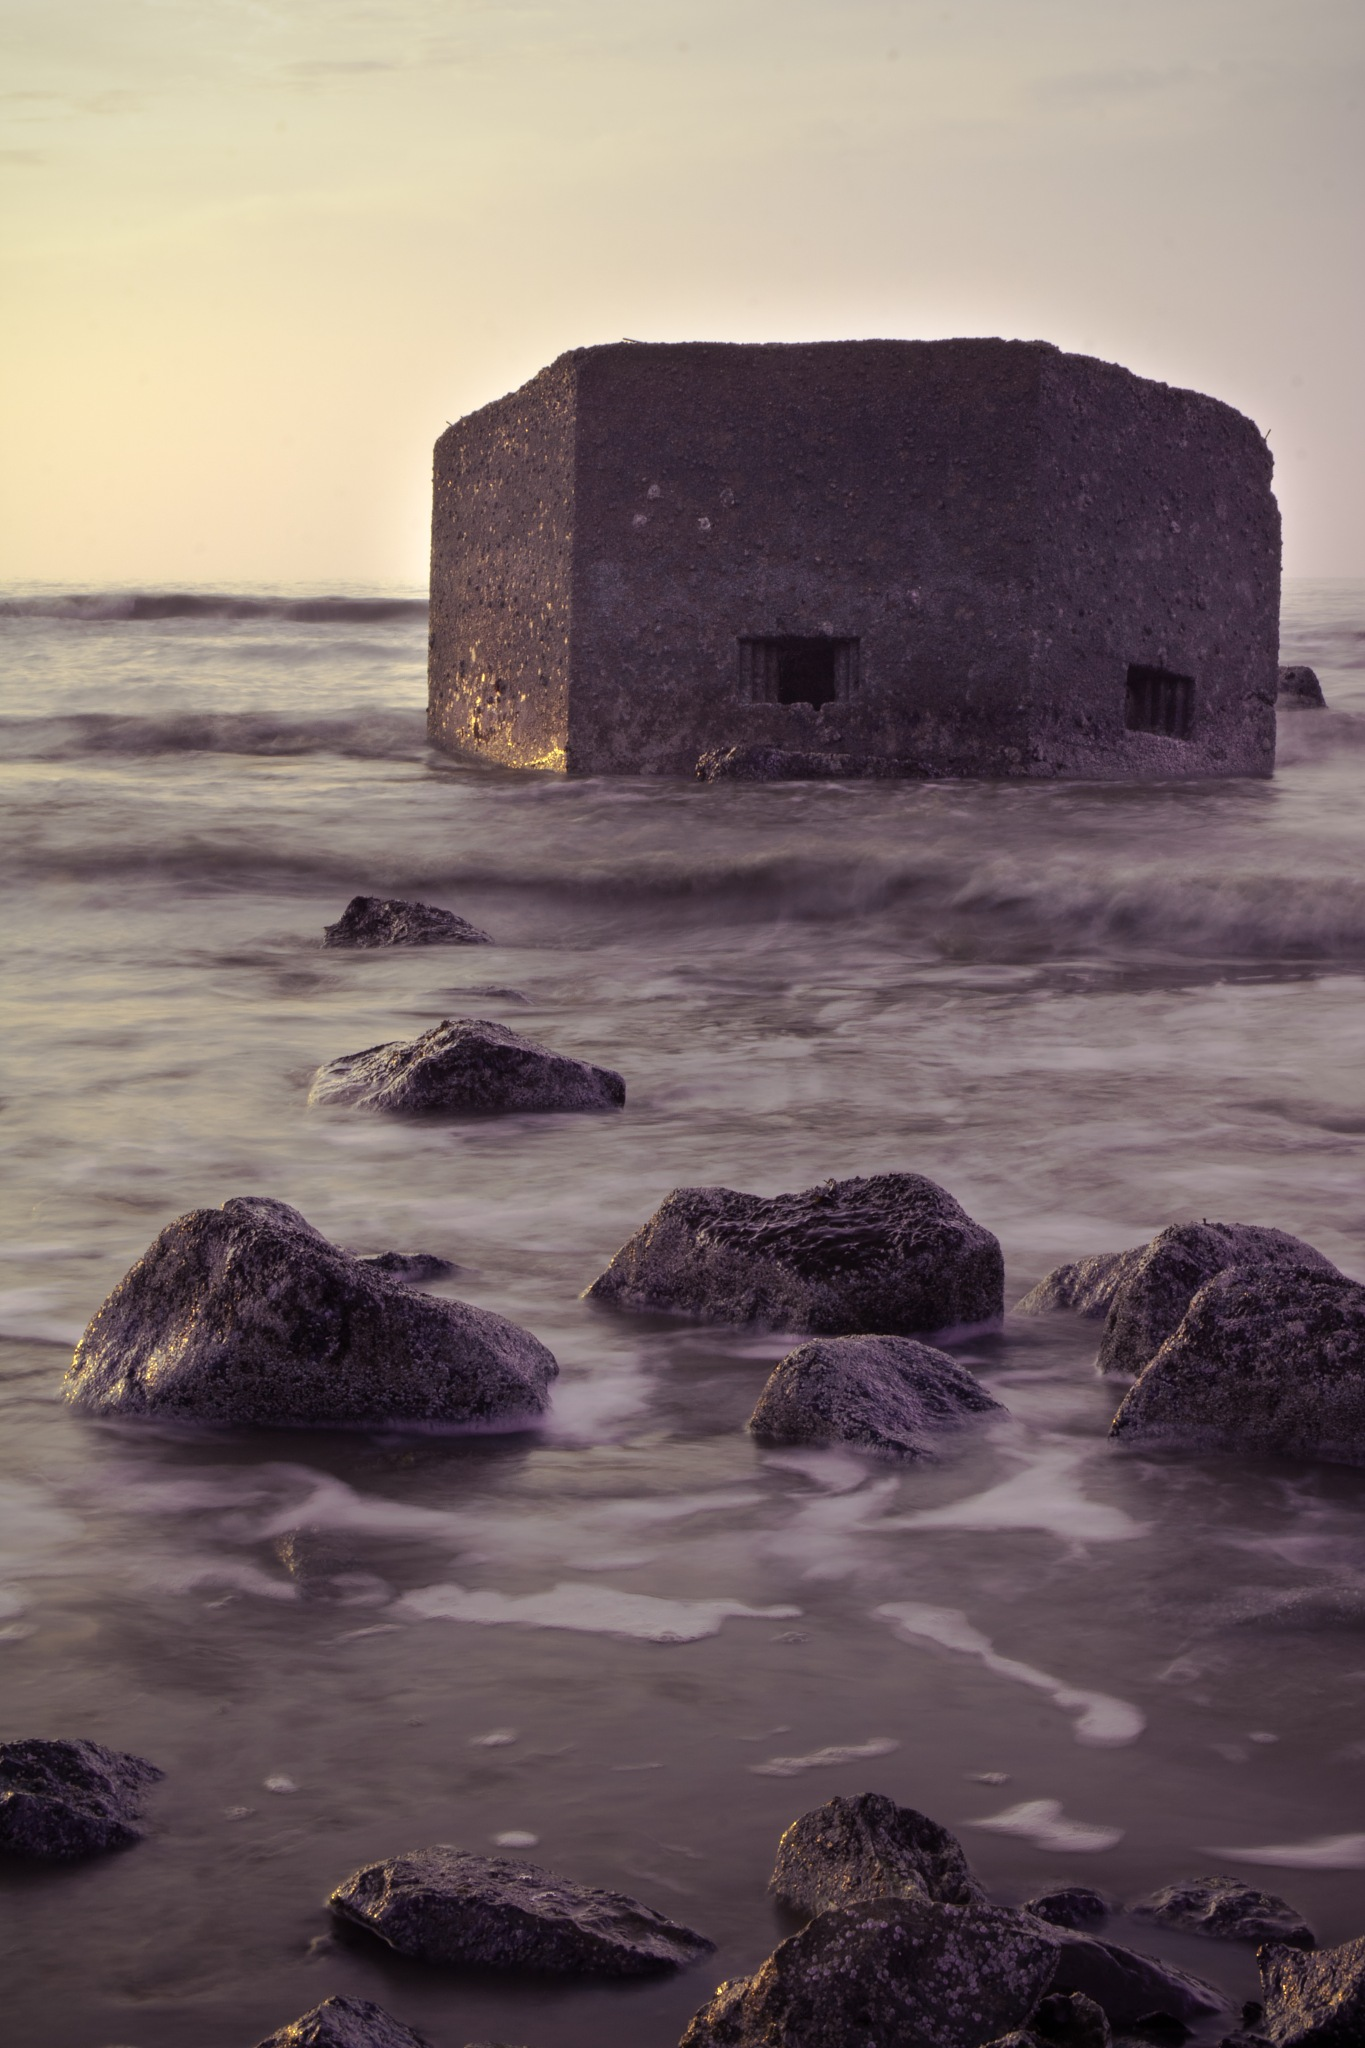 Bawdsey Pillboxes #2 by Joe Elsom